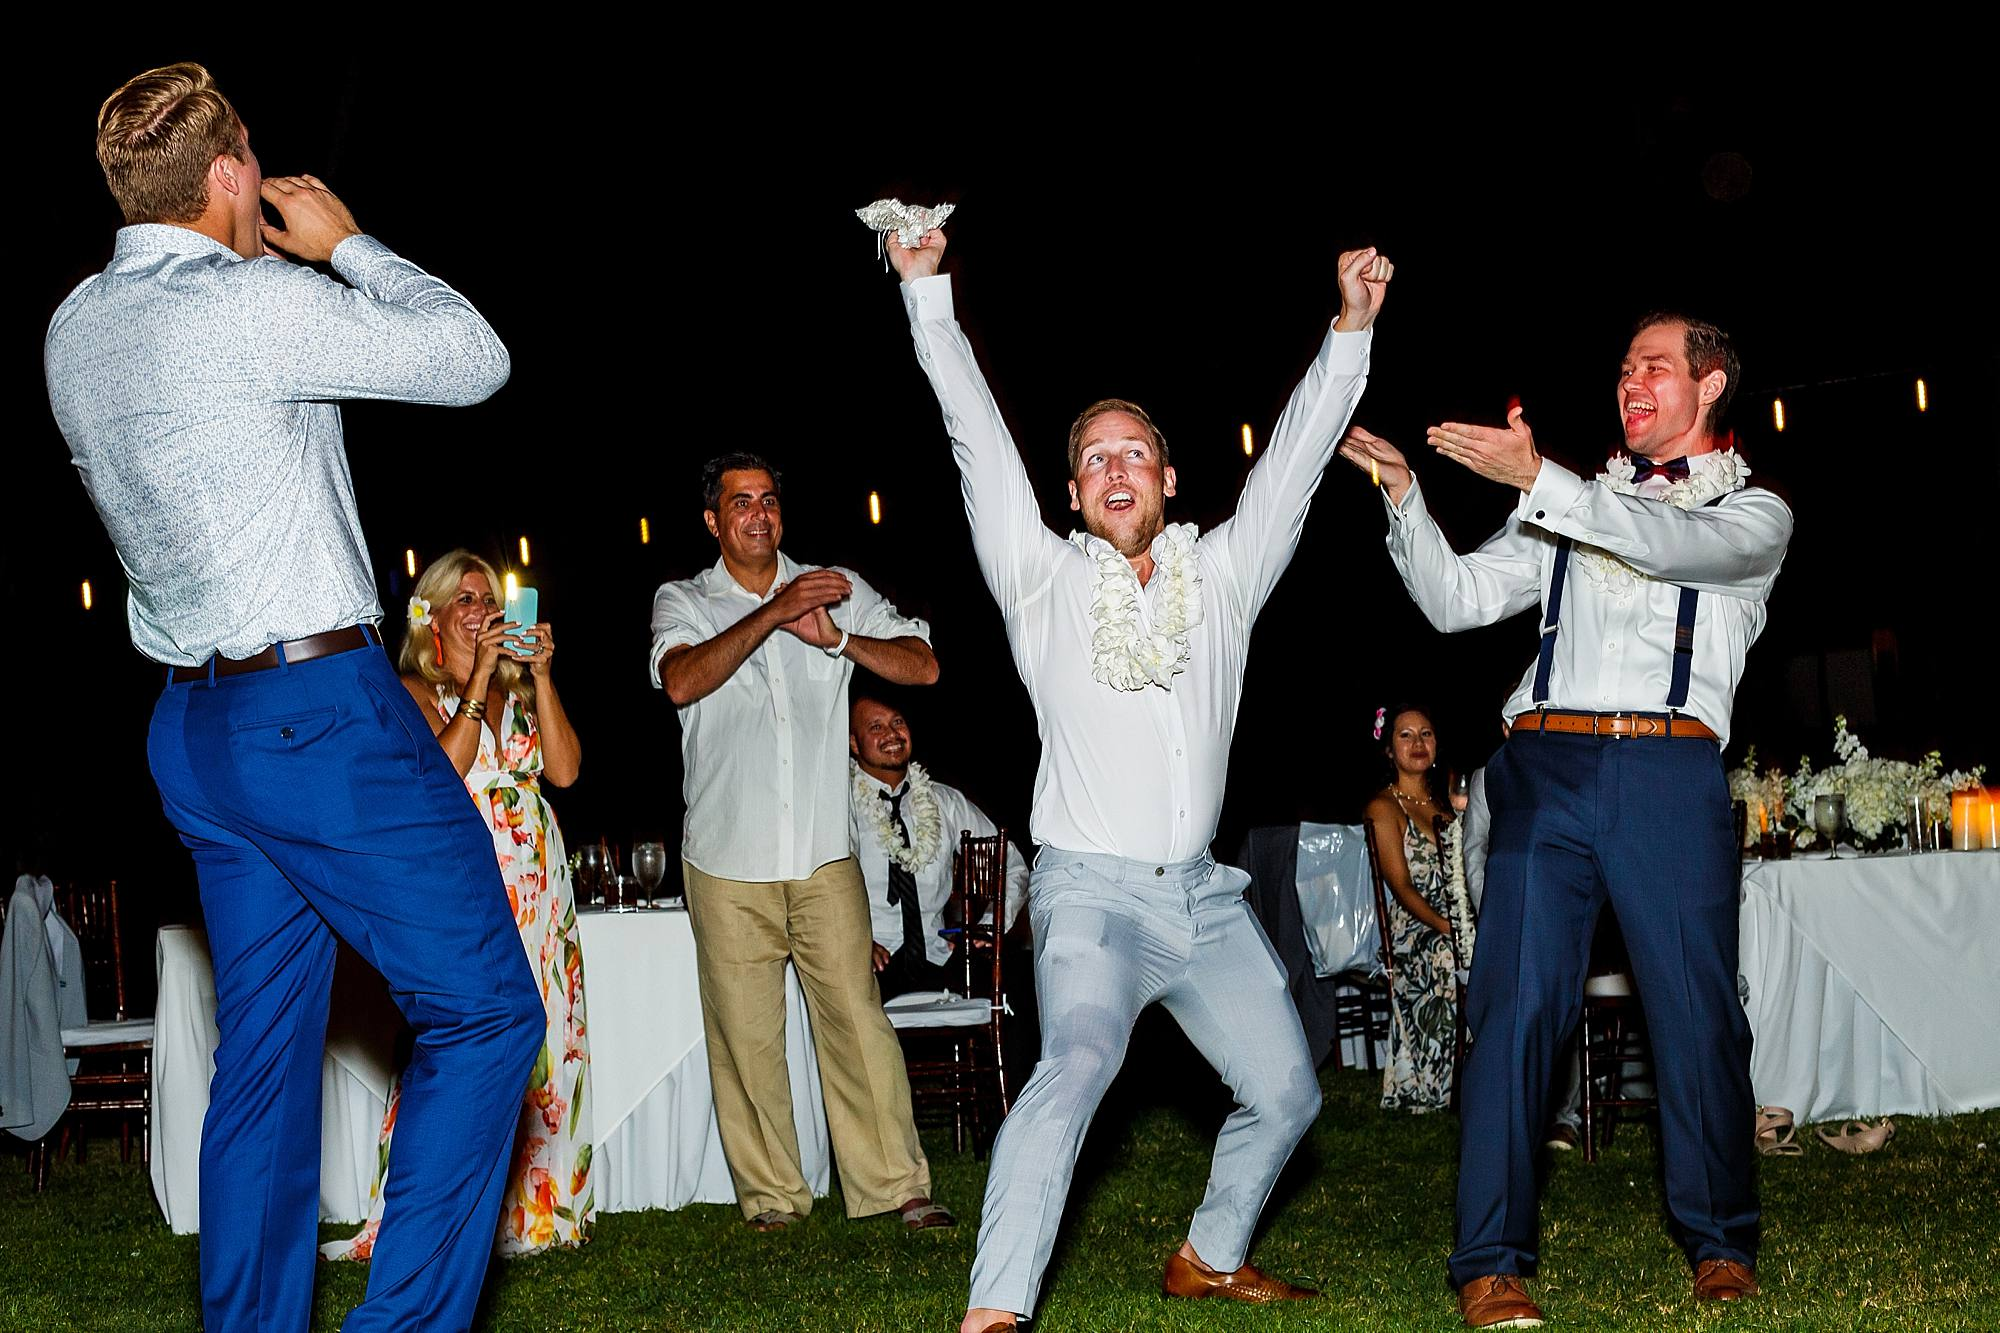 excited guest during garter toss